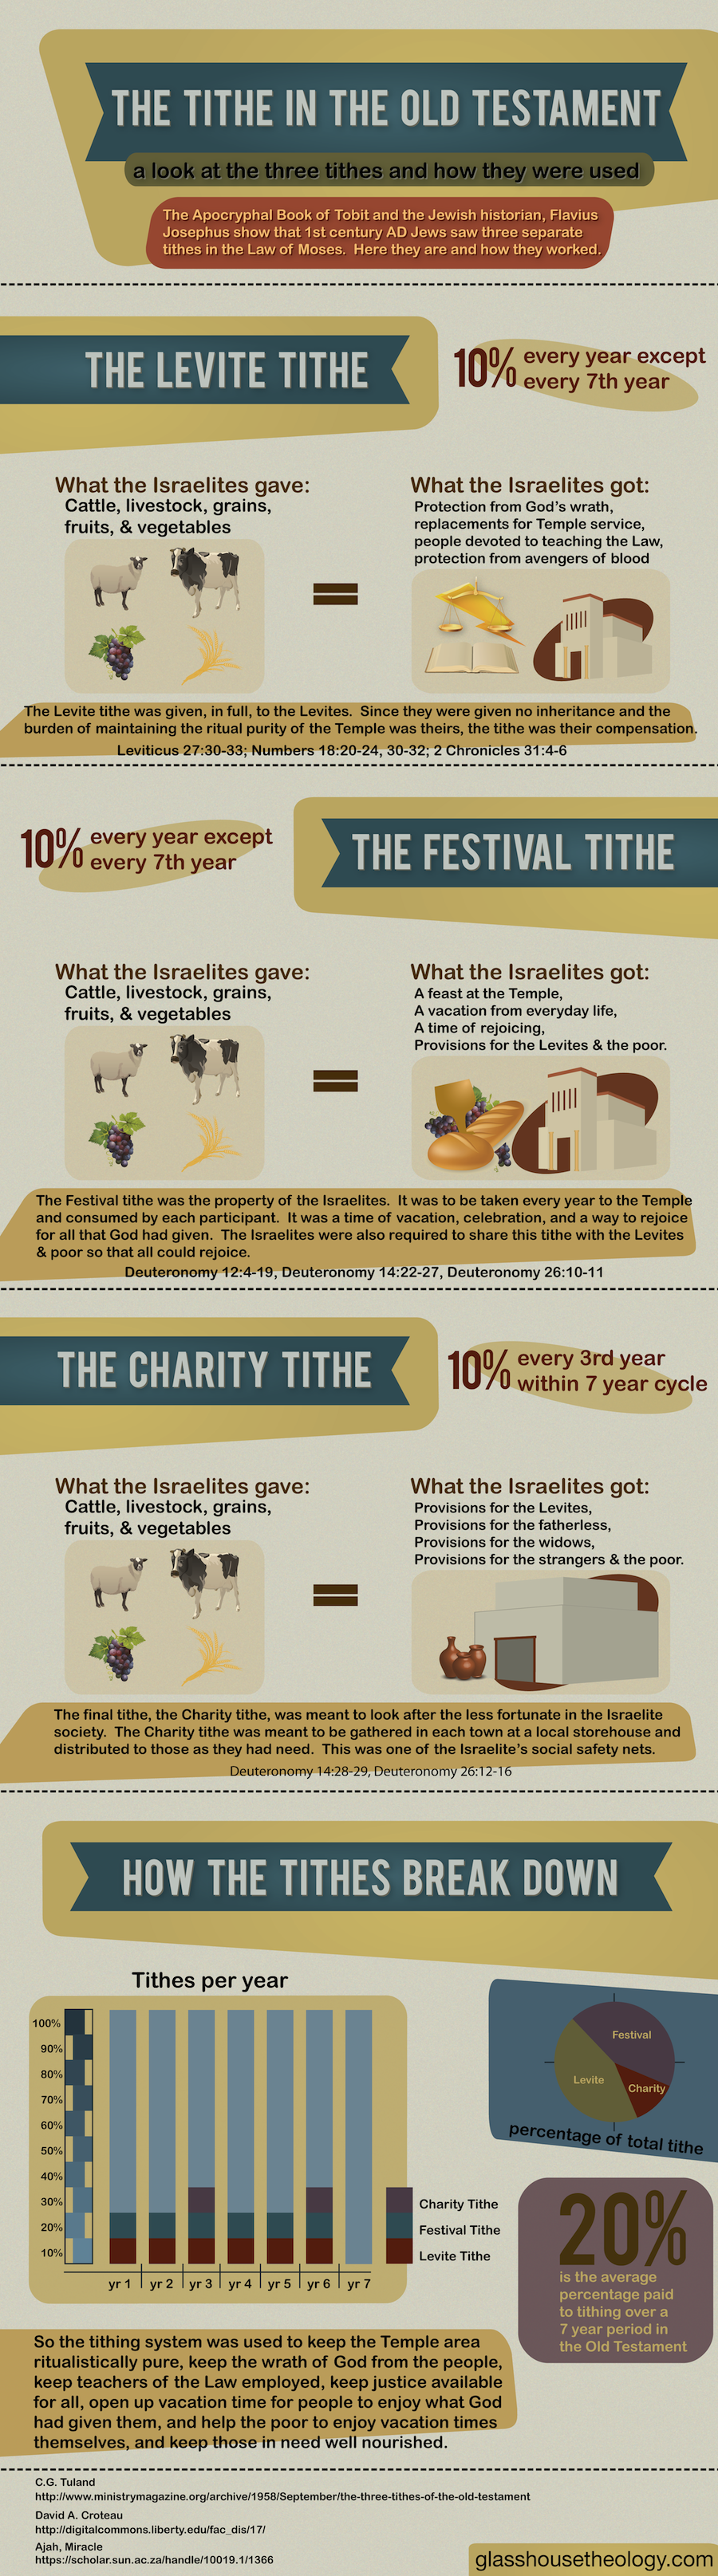 [Infographic] Tithing In The Old Testament